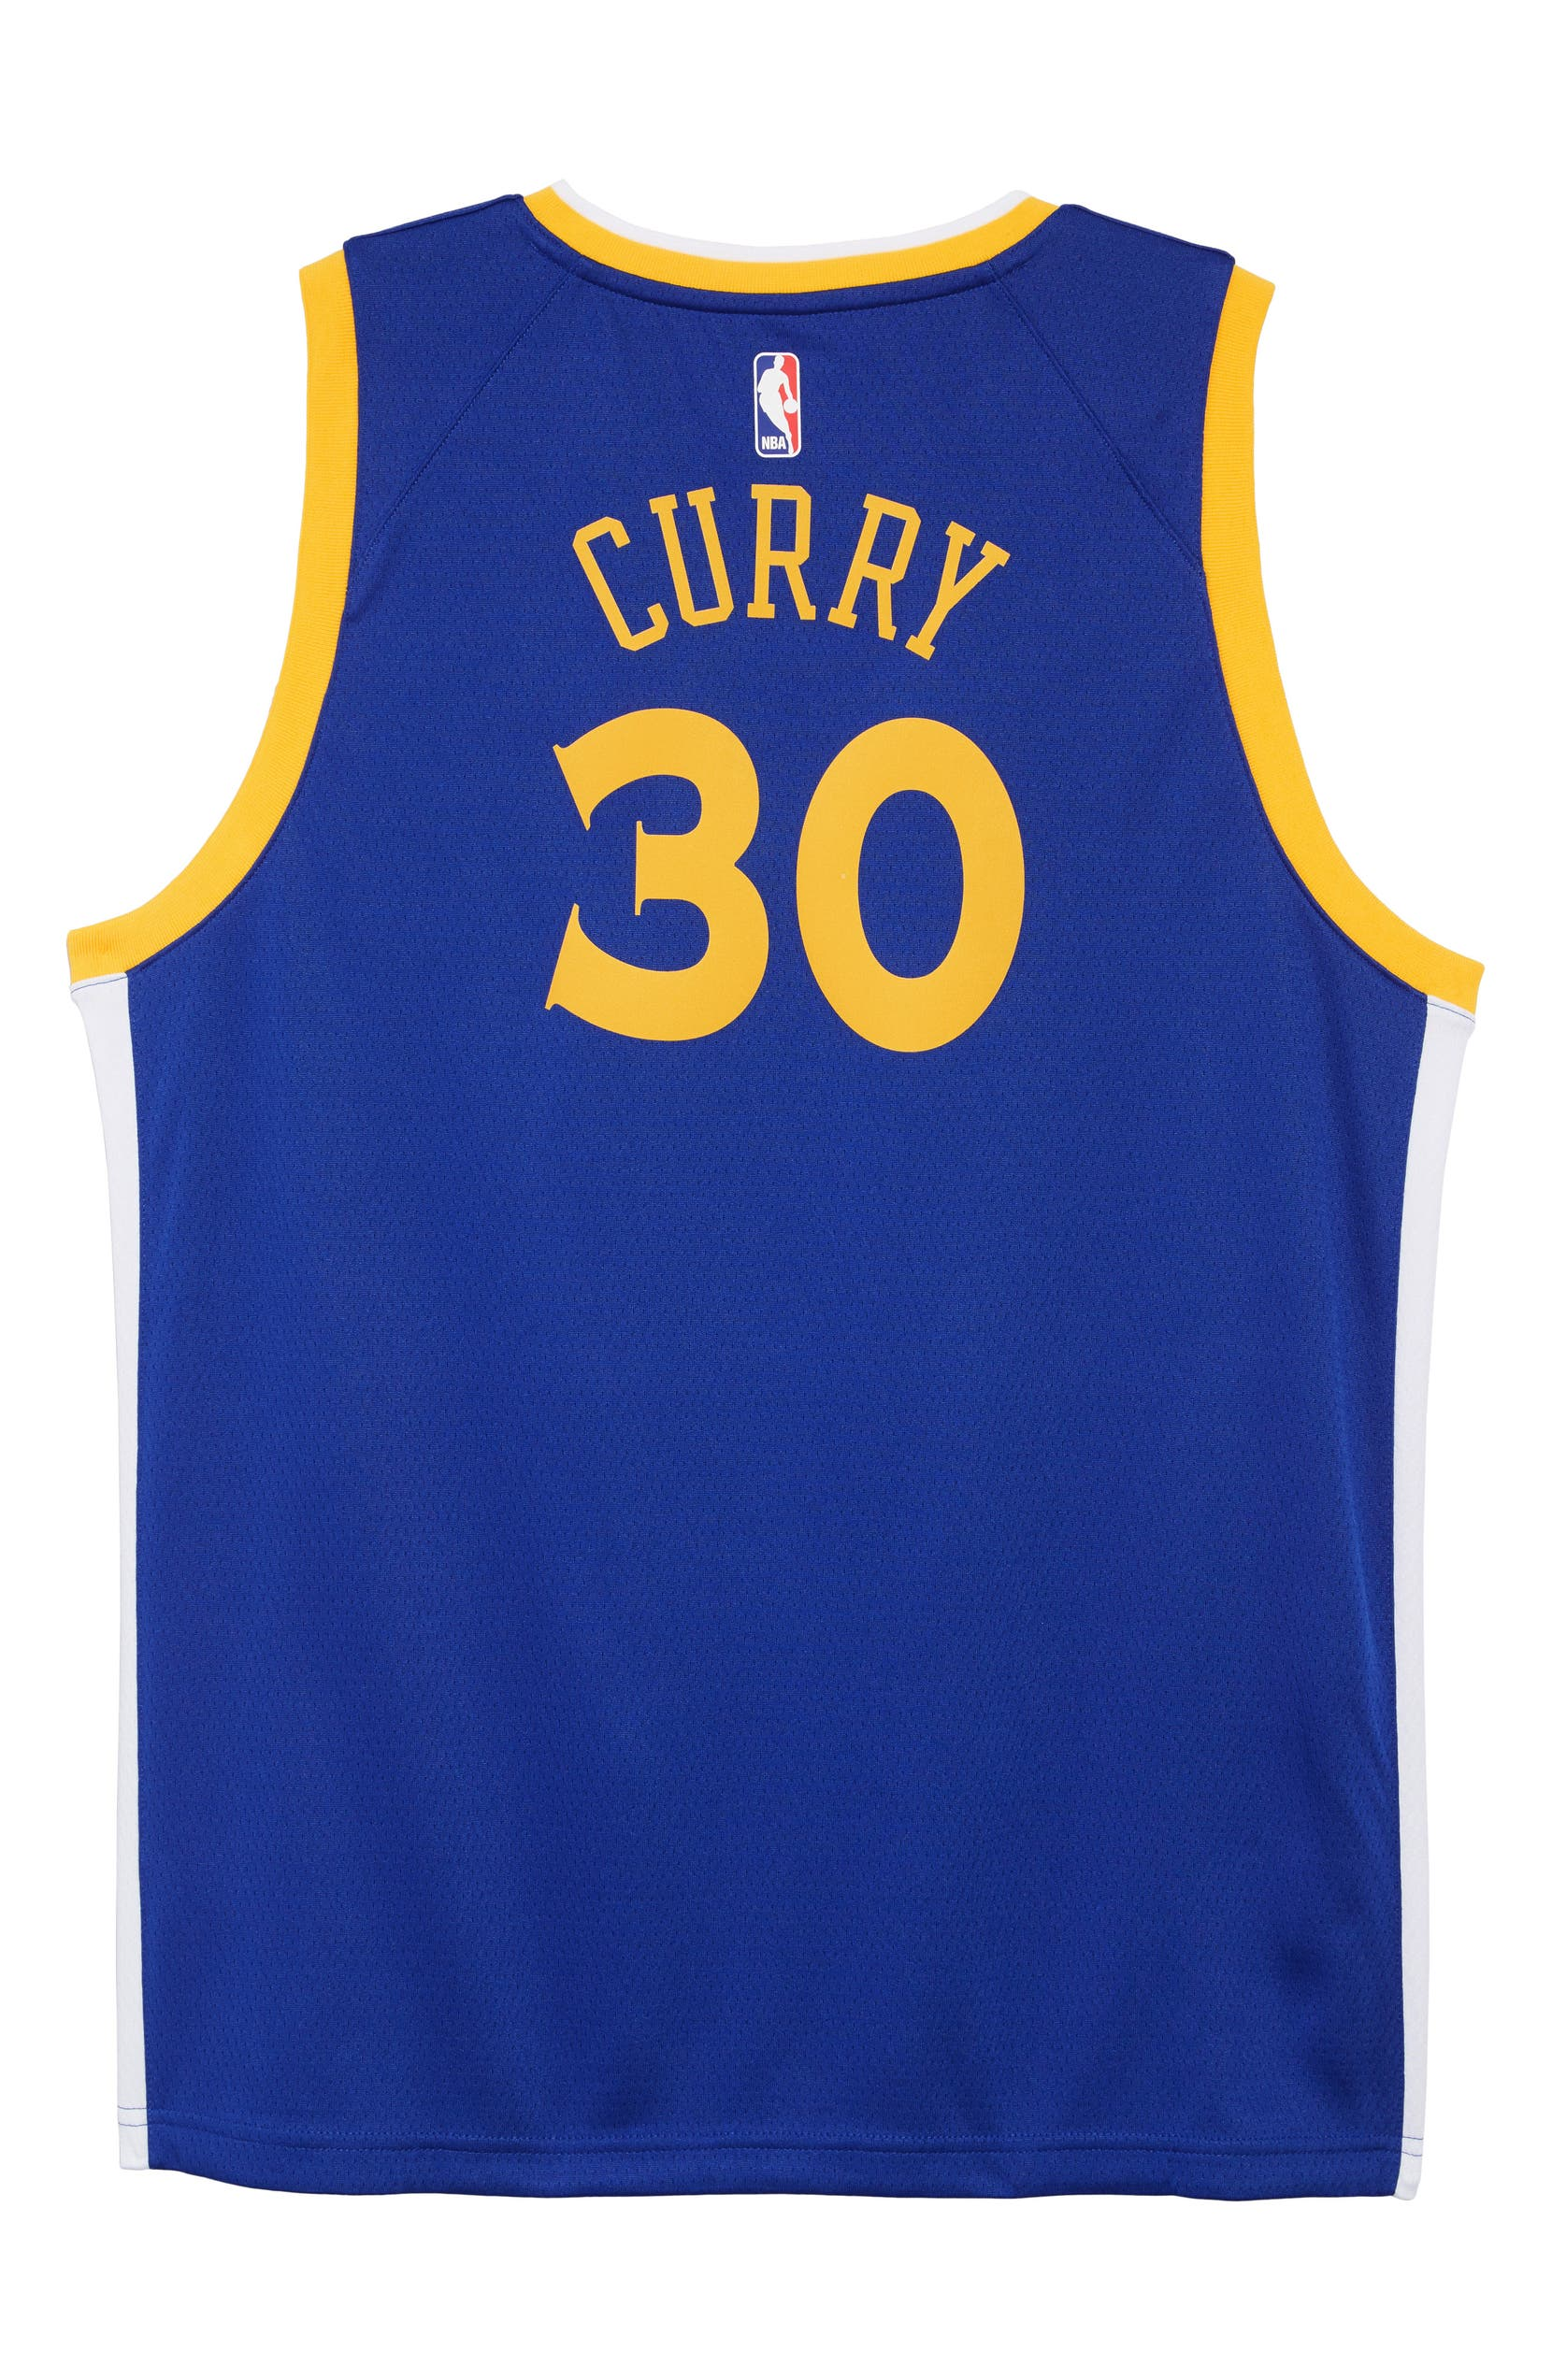 the best attitude 6fae0 58e25 Golden State Warriors Stephen Curry Basketball Jersey